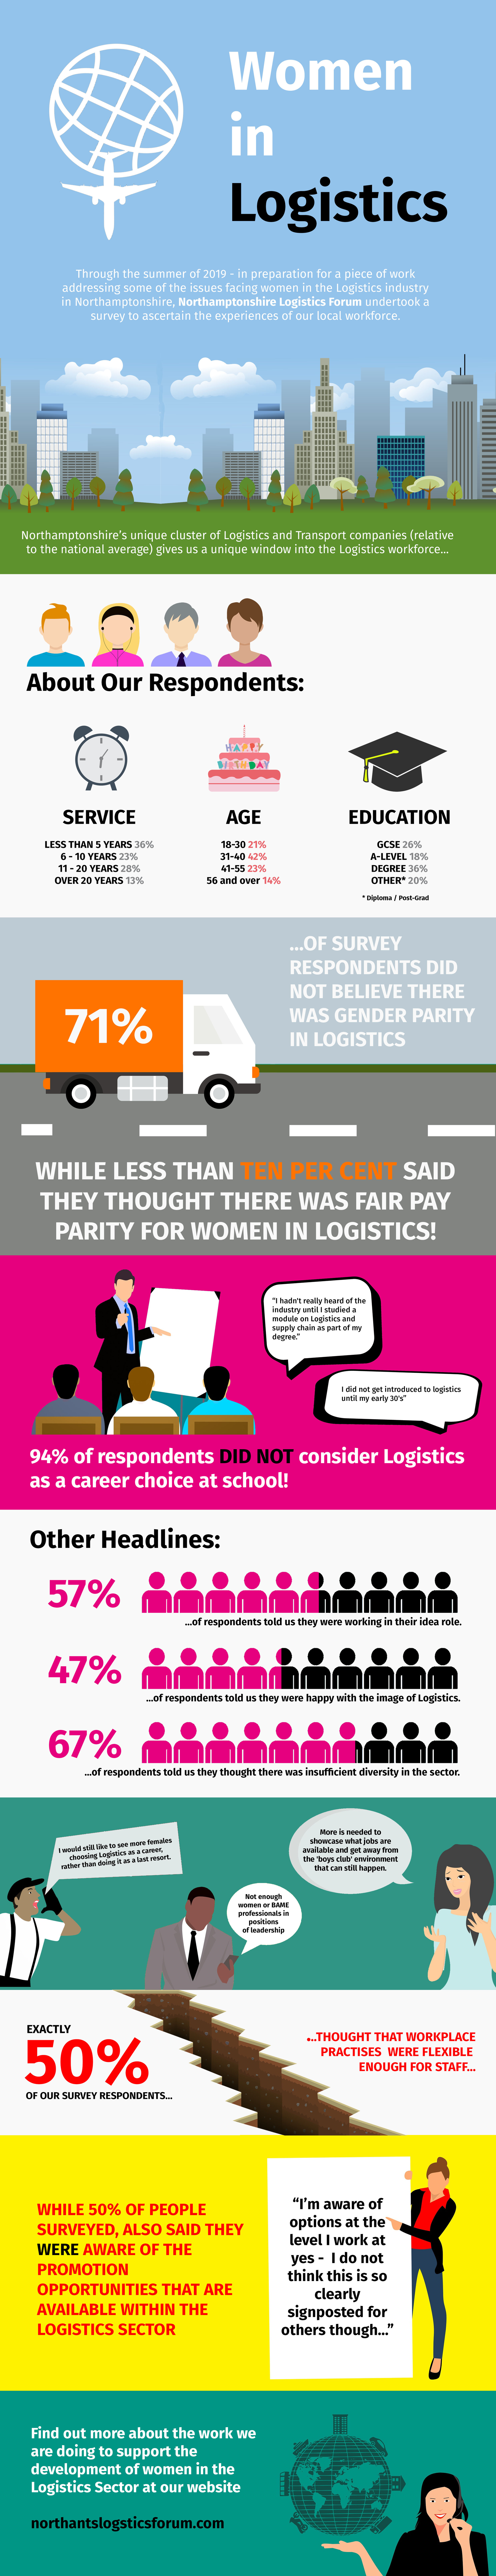 Final WIL Infographic LR